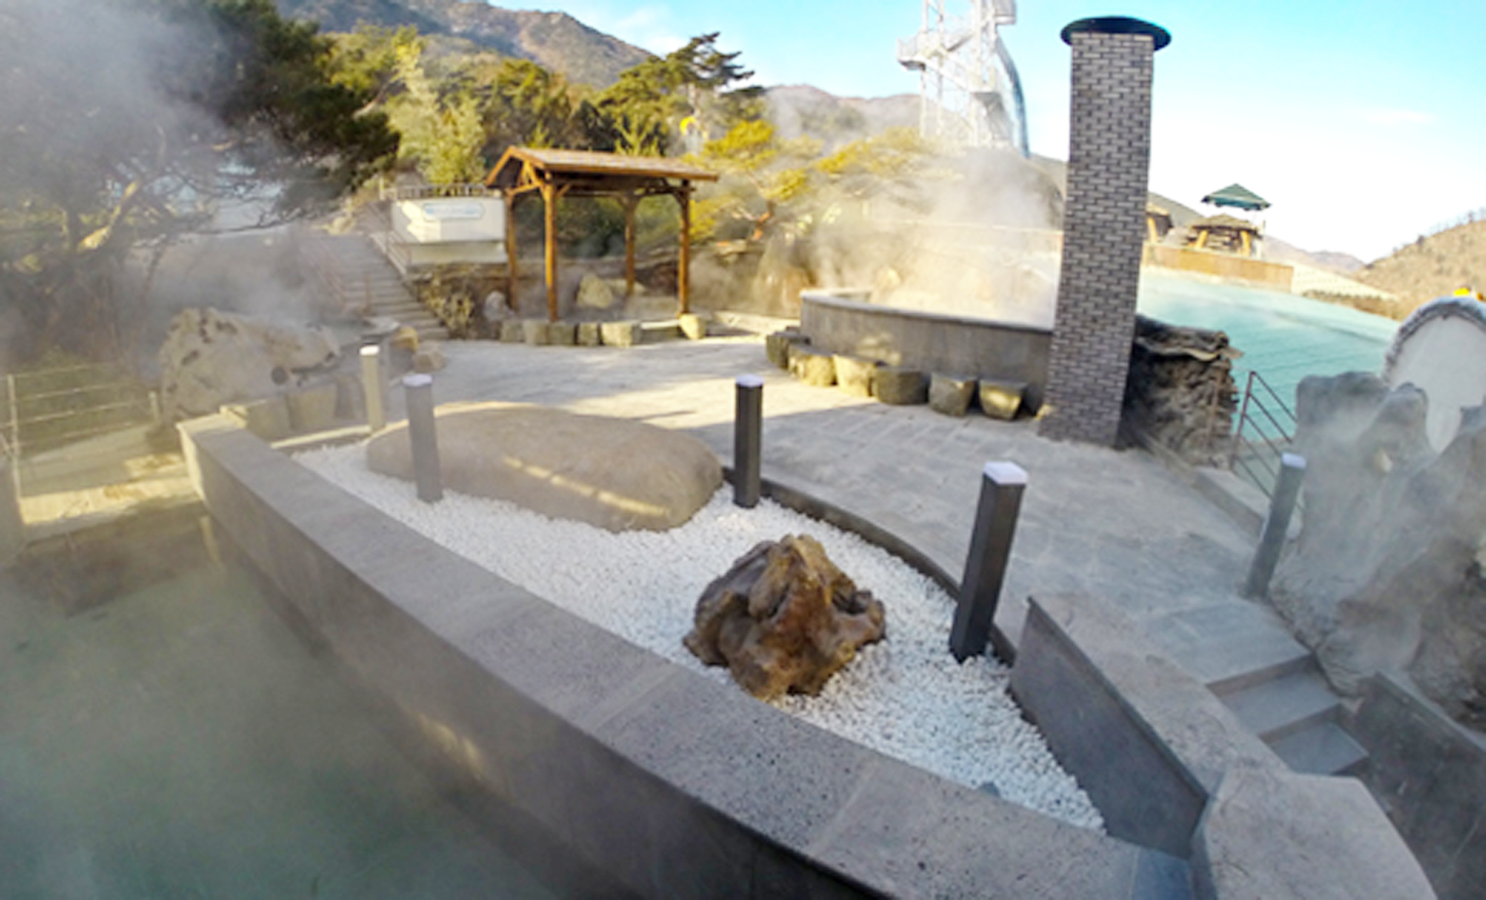 Outdoor hotspring in Spavalley